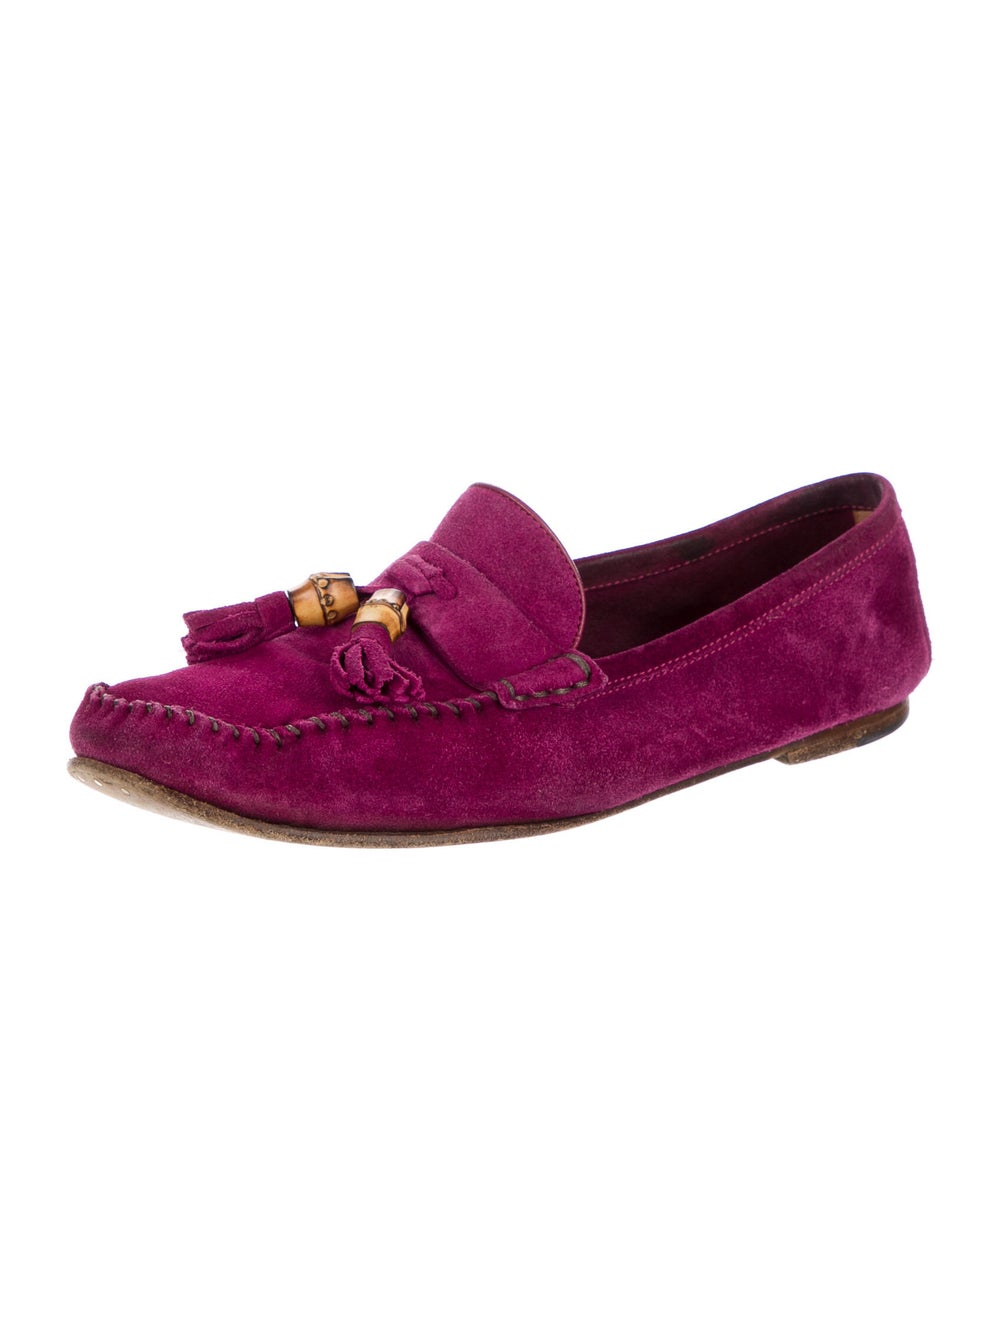 Gucci Suede Tassel Accents Loafers Purple - image 2